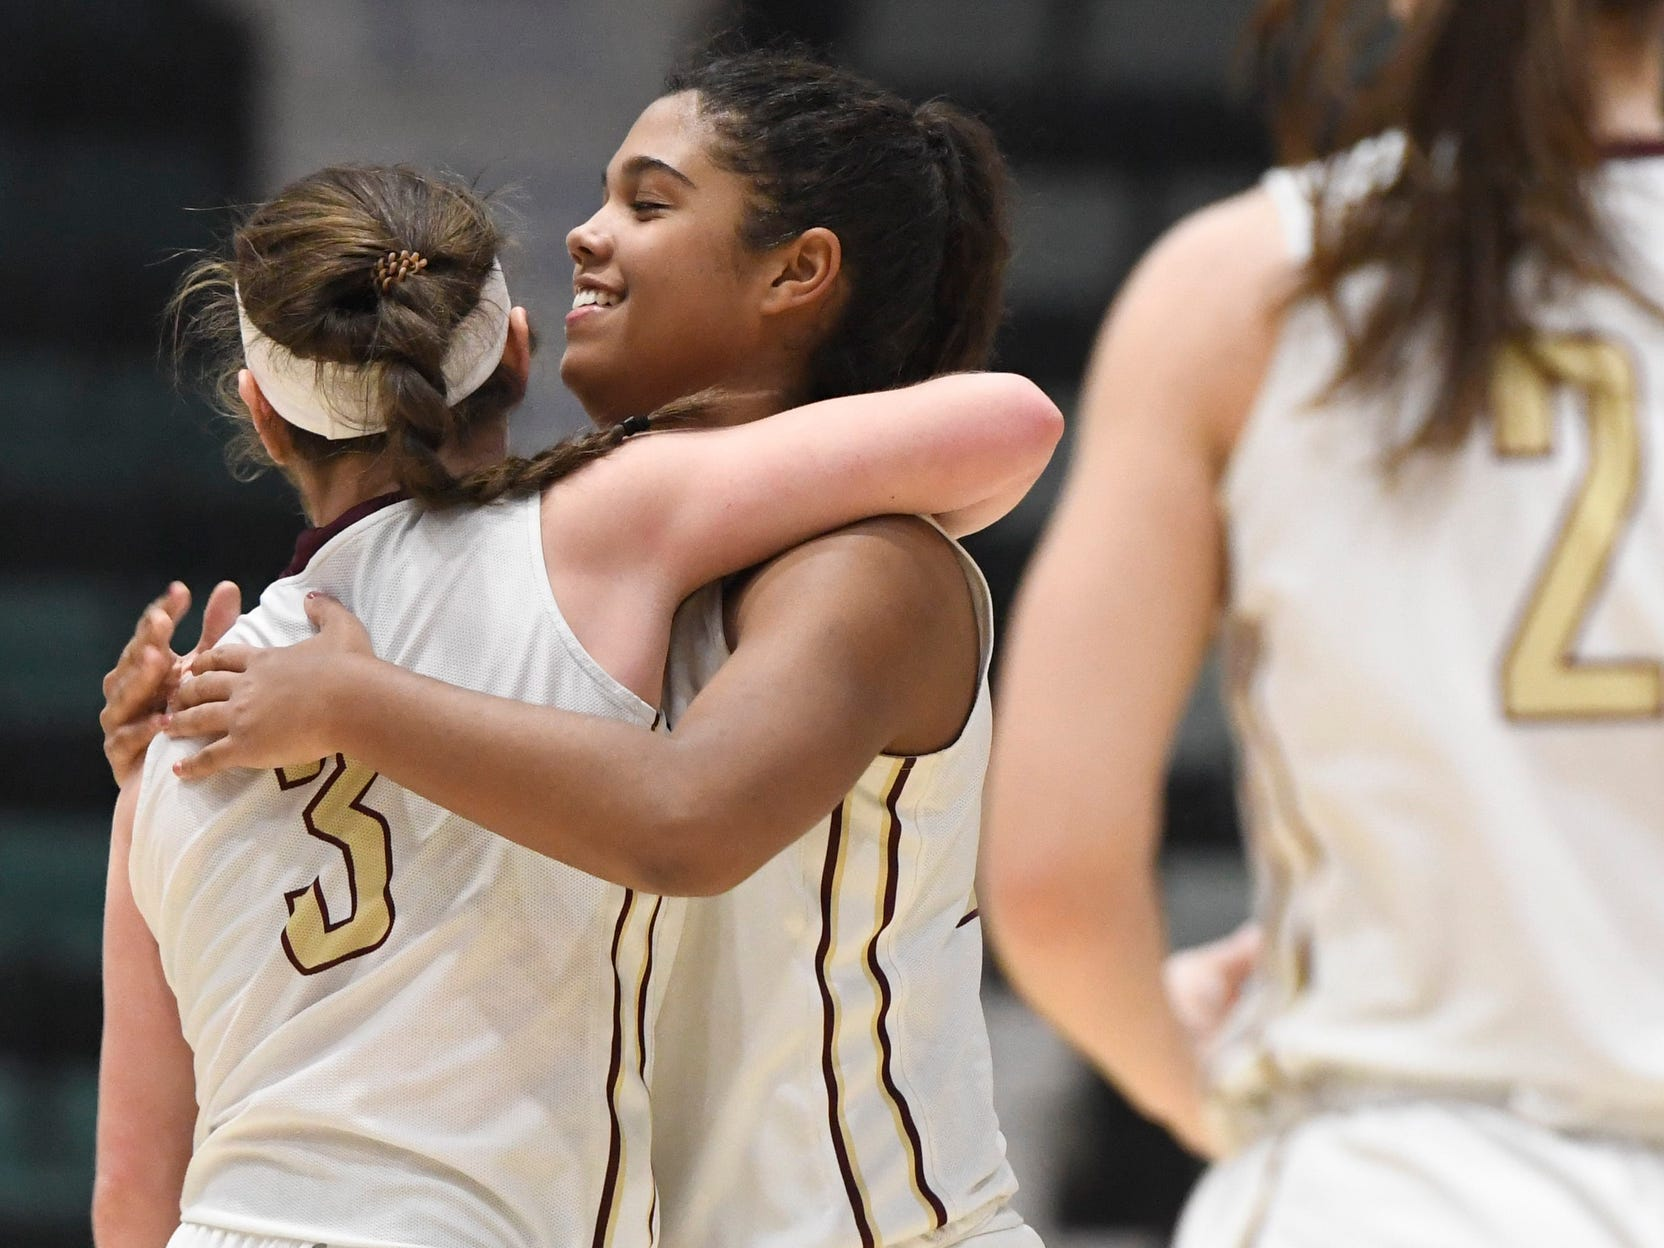 Pittsford Mendon's Ellie Mooney (3) hugs her teammate after getting a foul called against their opponents, James Madison during their Girls Class A Federation Tournament of Champions semifinal at Cool Insuring Arena on Friday, March 23, 2019, in Glens Falls, N.Y.